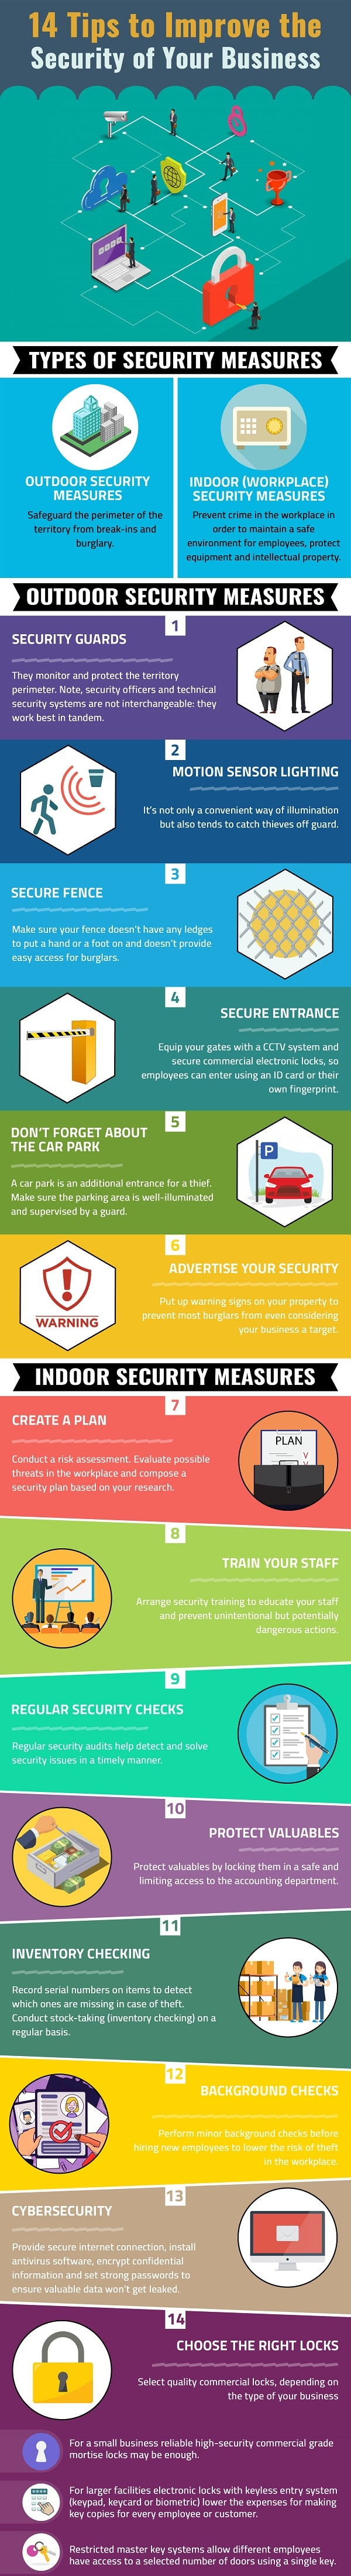 Infographic: 14 Tips on Improving the Security of Your Business